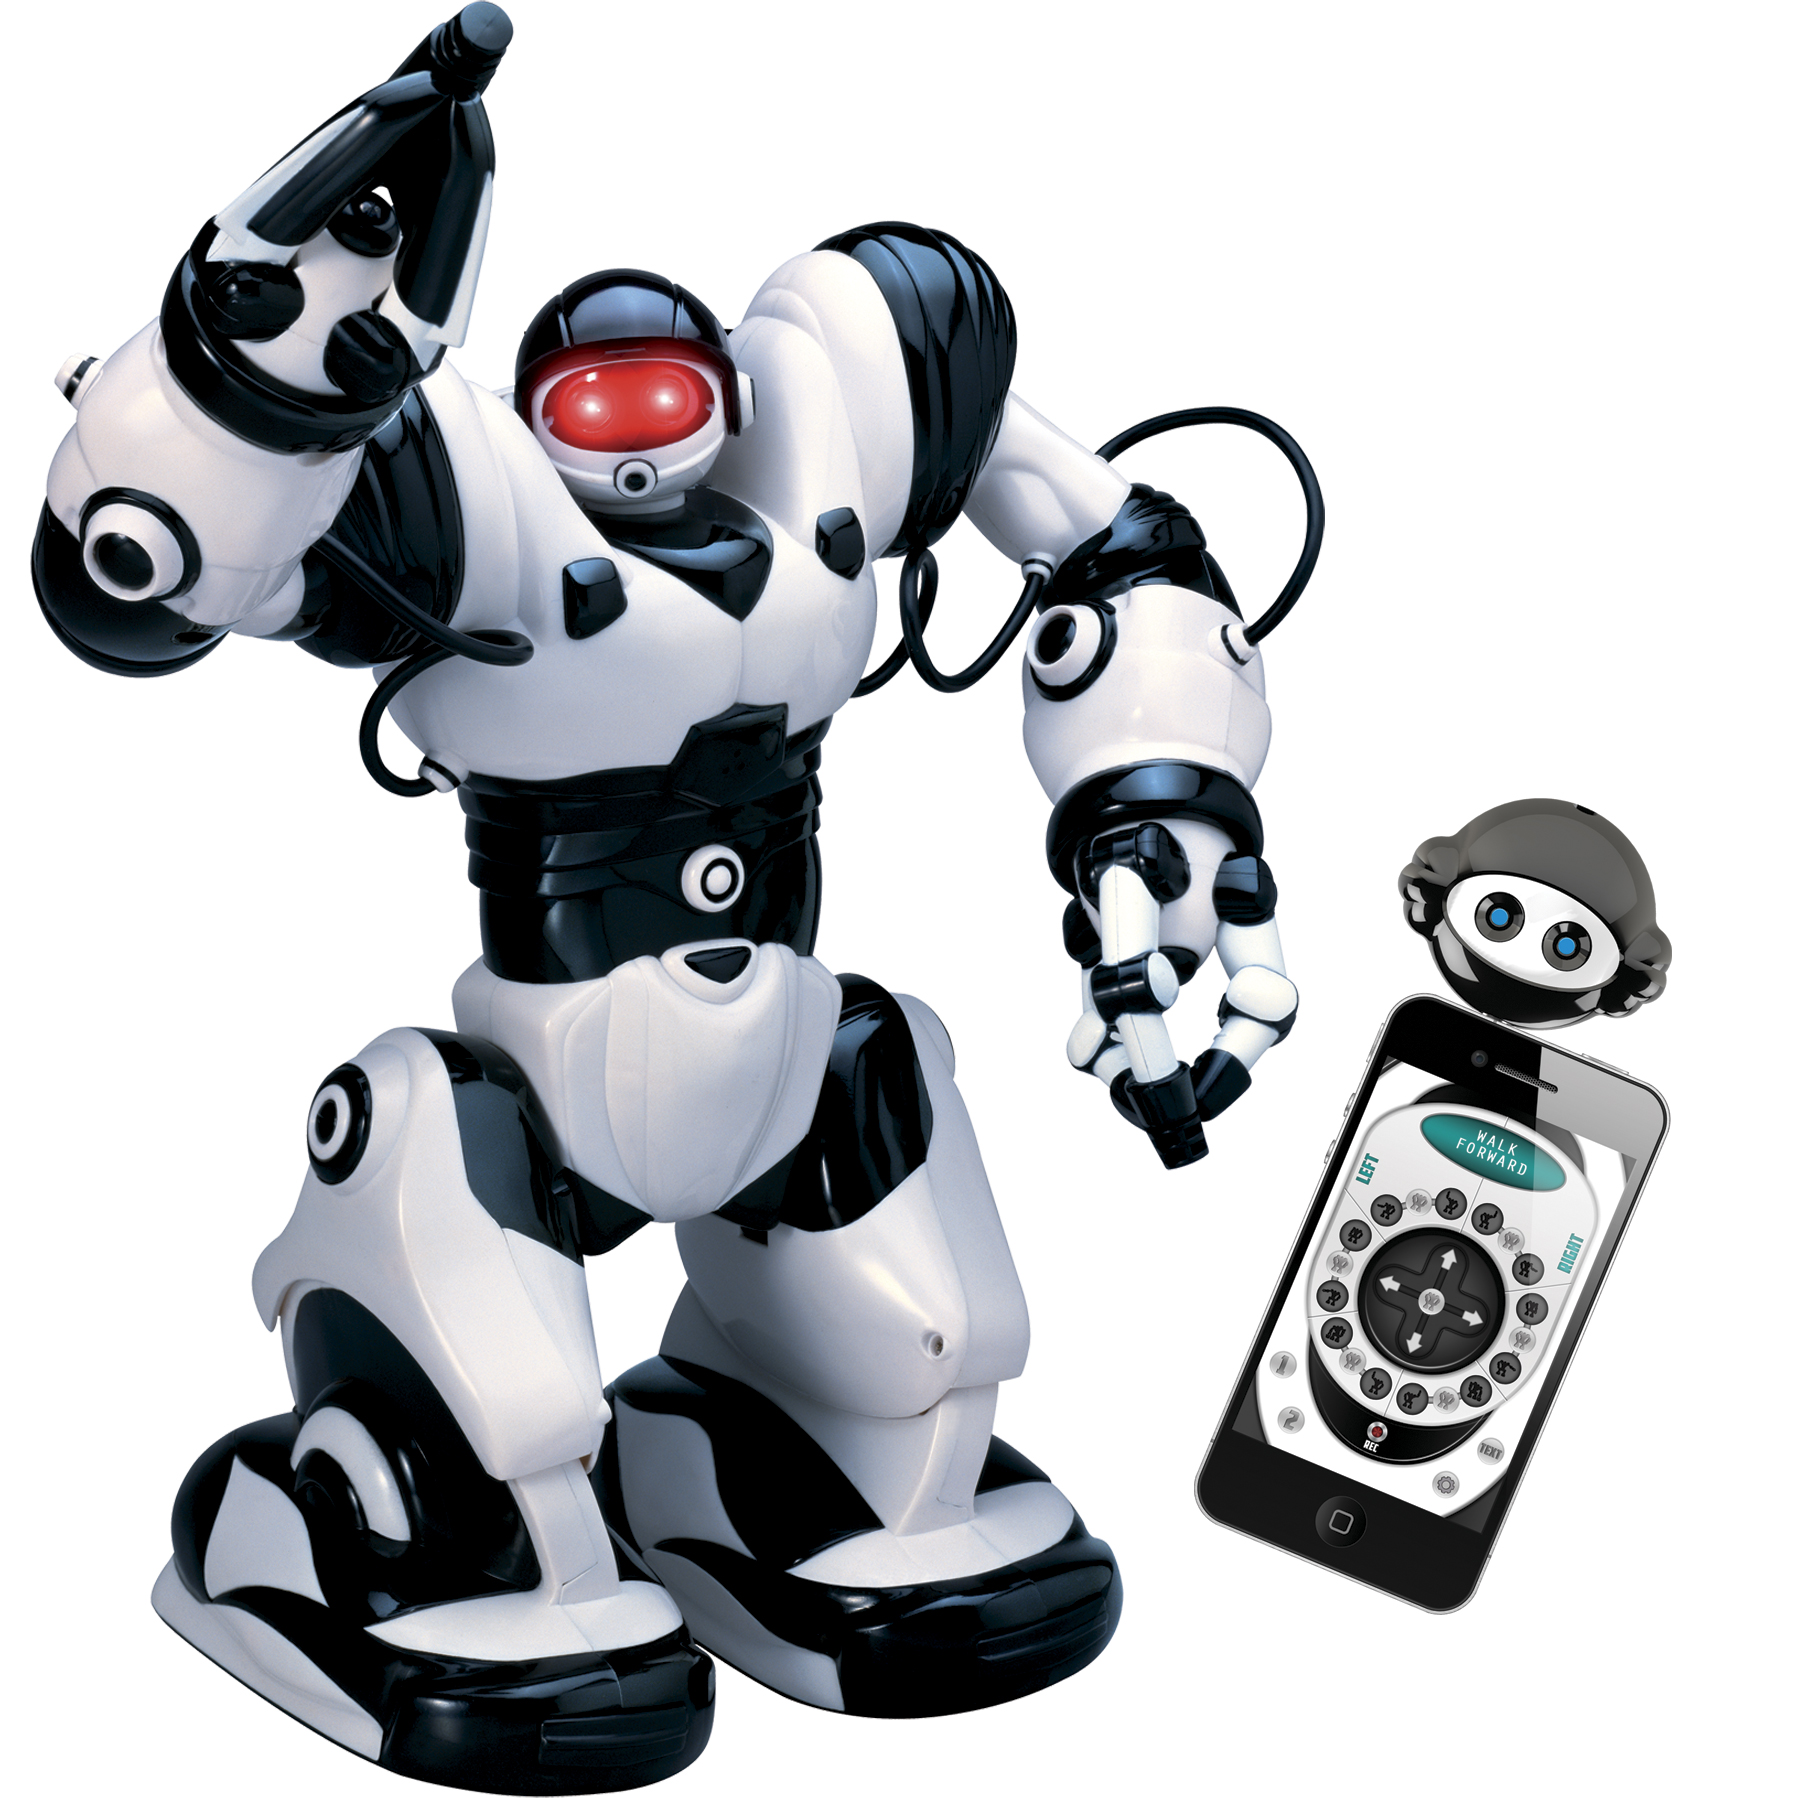 wowwee robosapien humanoid toy robot with remote control manual